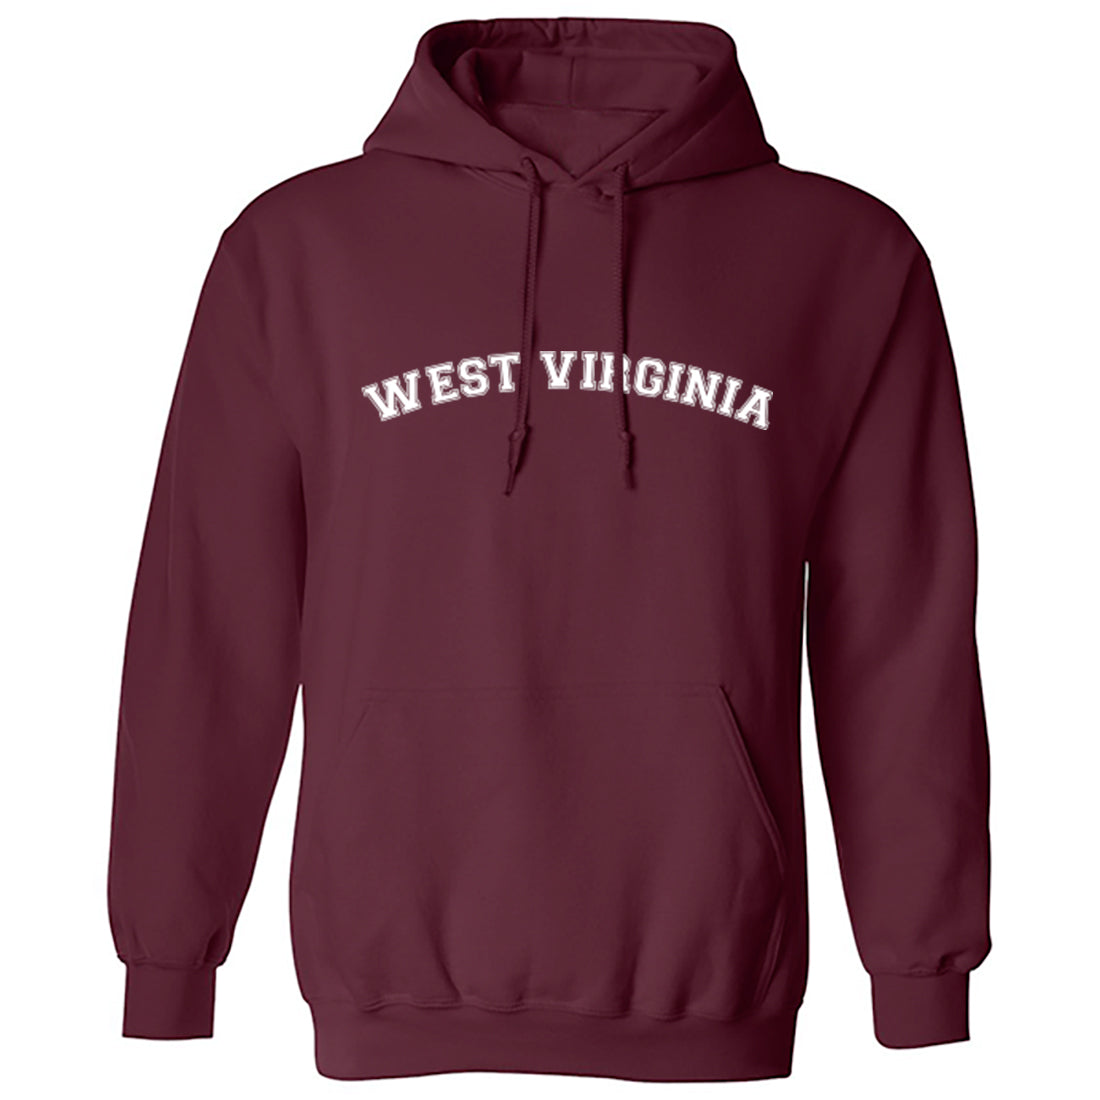 West Virginia American Type Unisex Hoodie K1120 - Illustrated Identity Ltd.